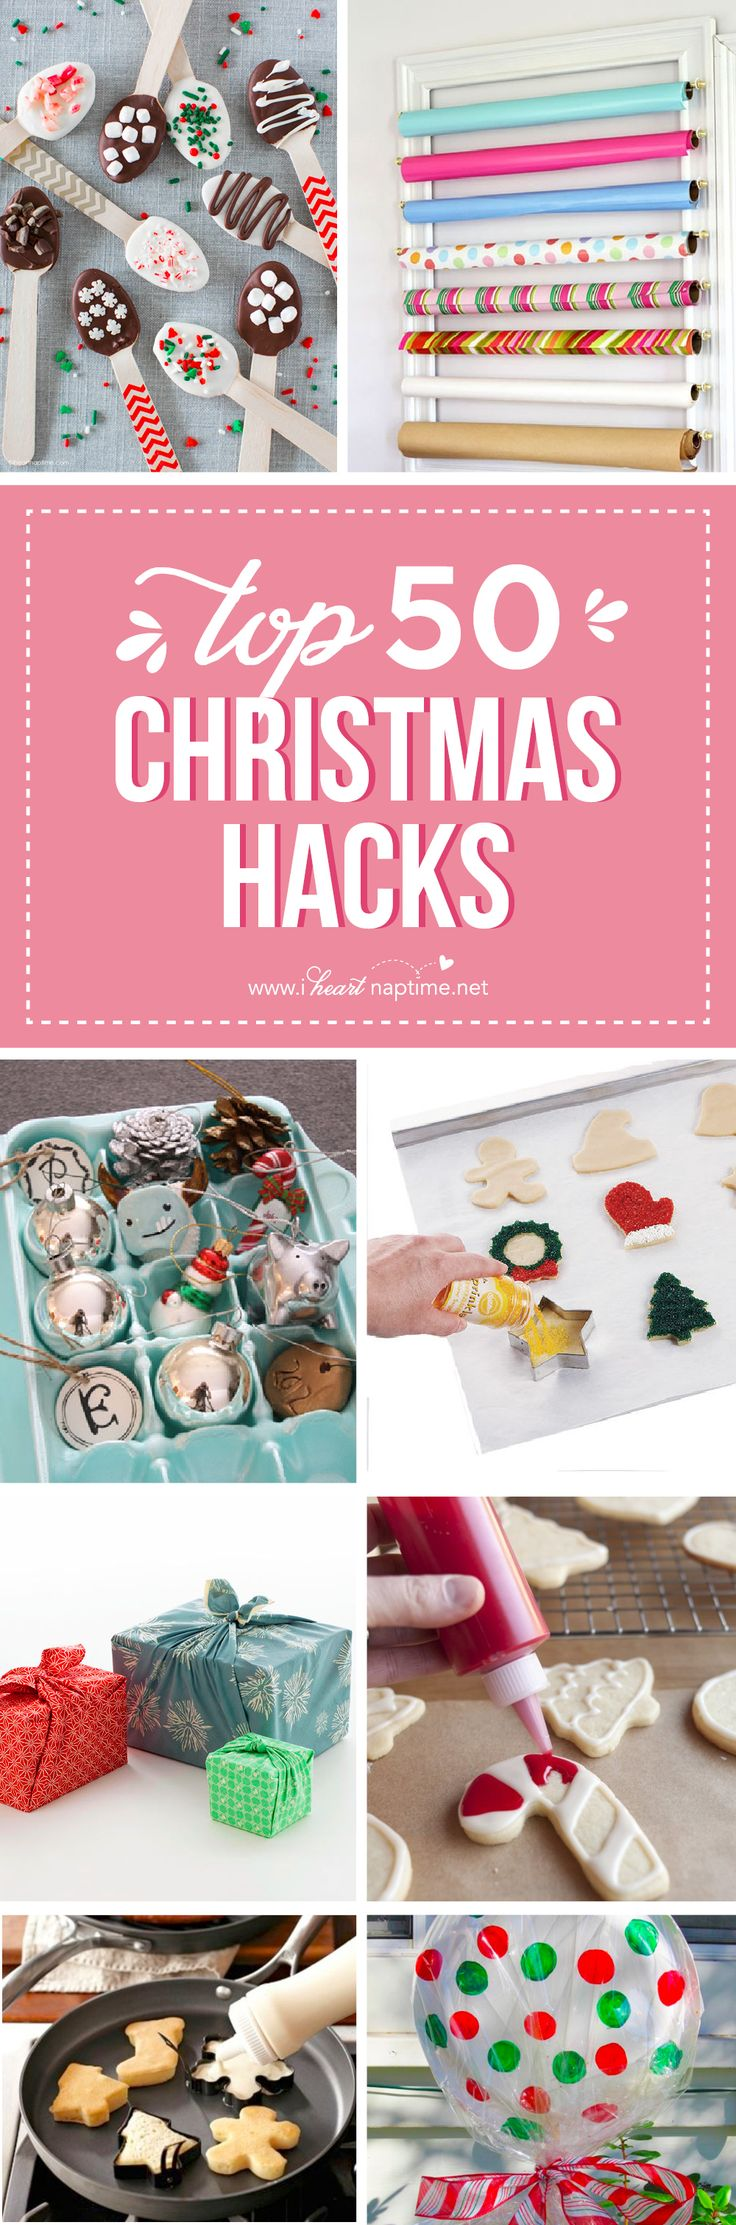 27 Christmas Hacks - tips and tricks that will make your life easier during the holidays!